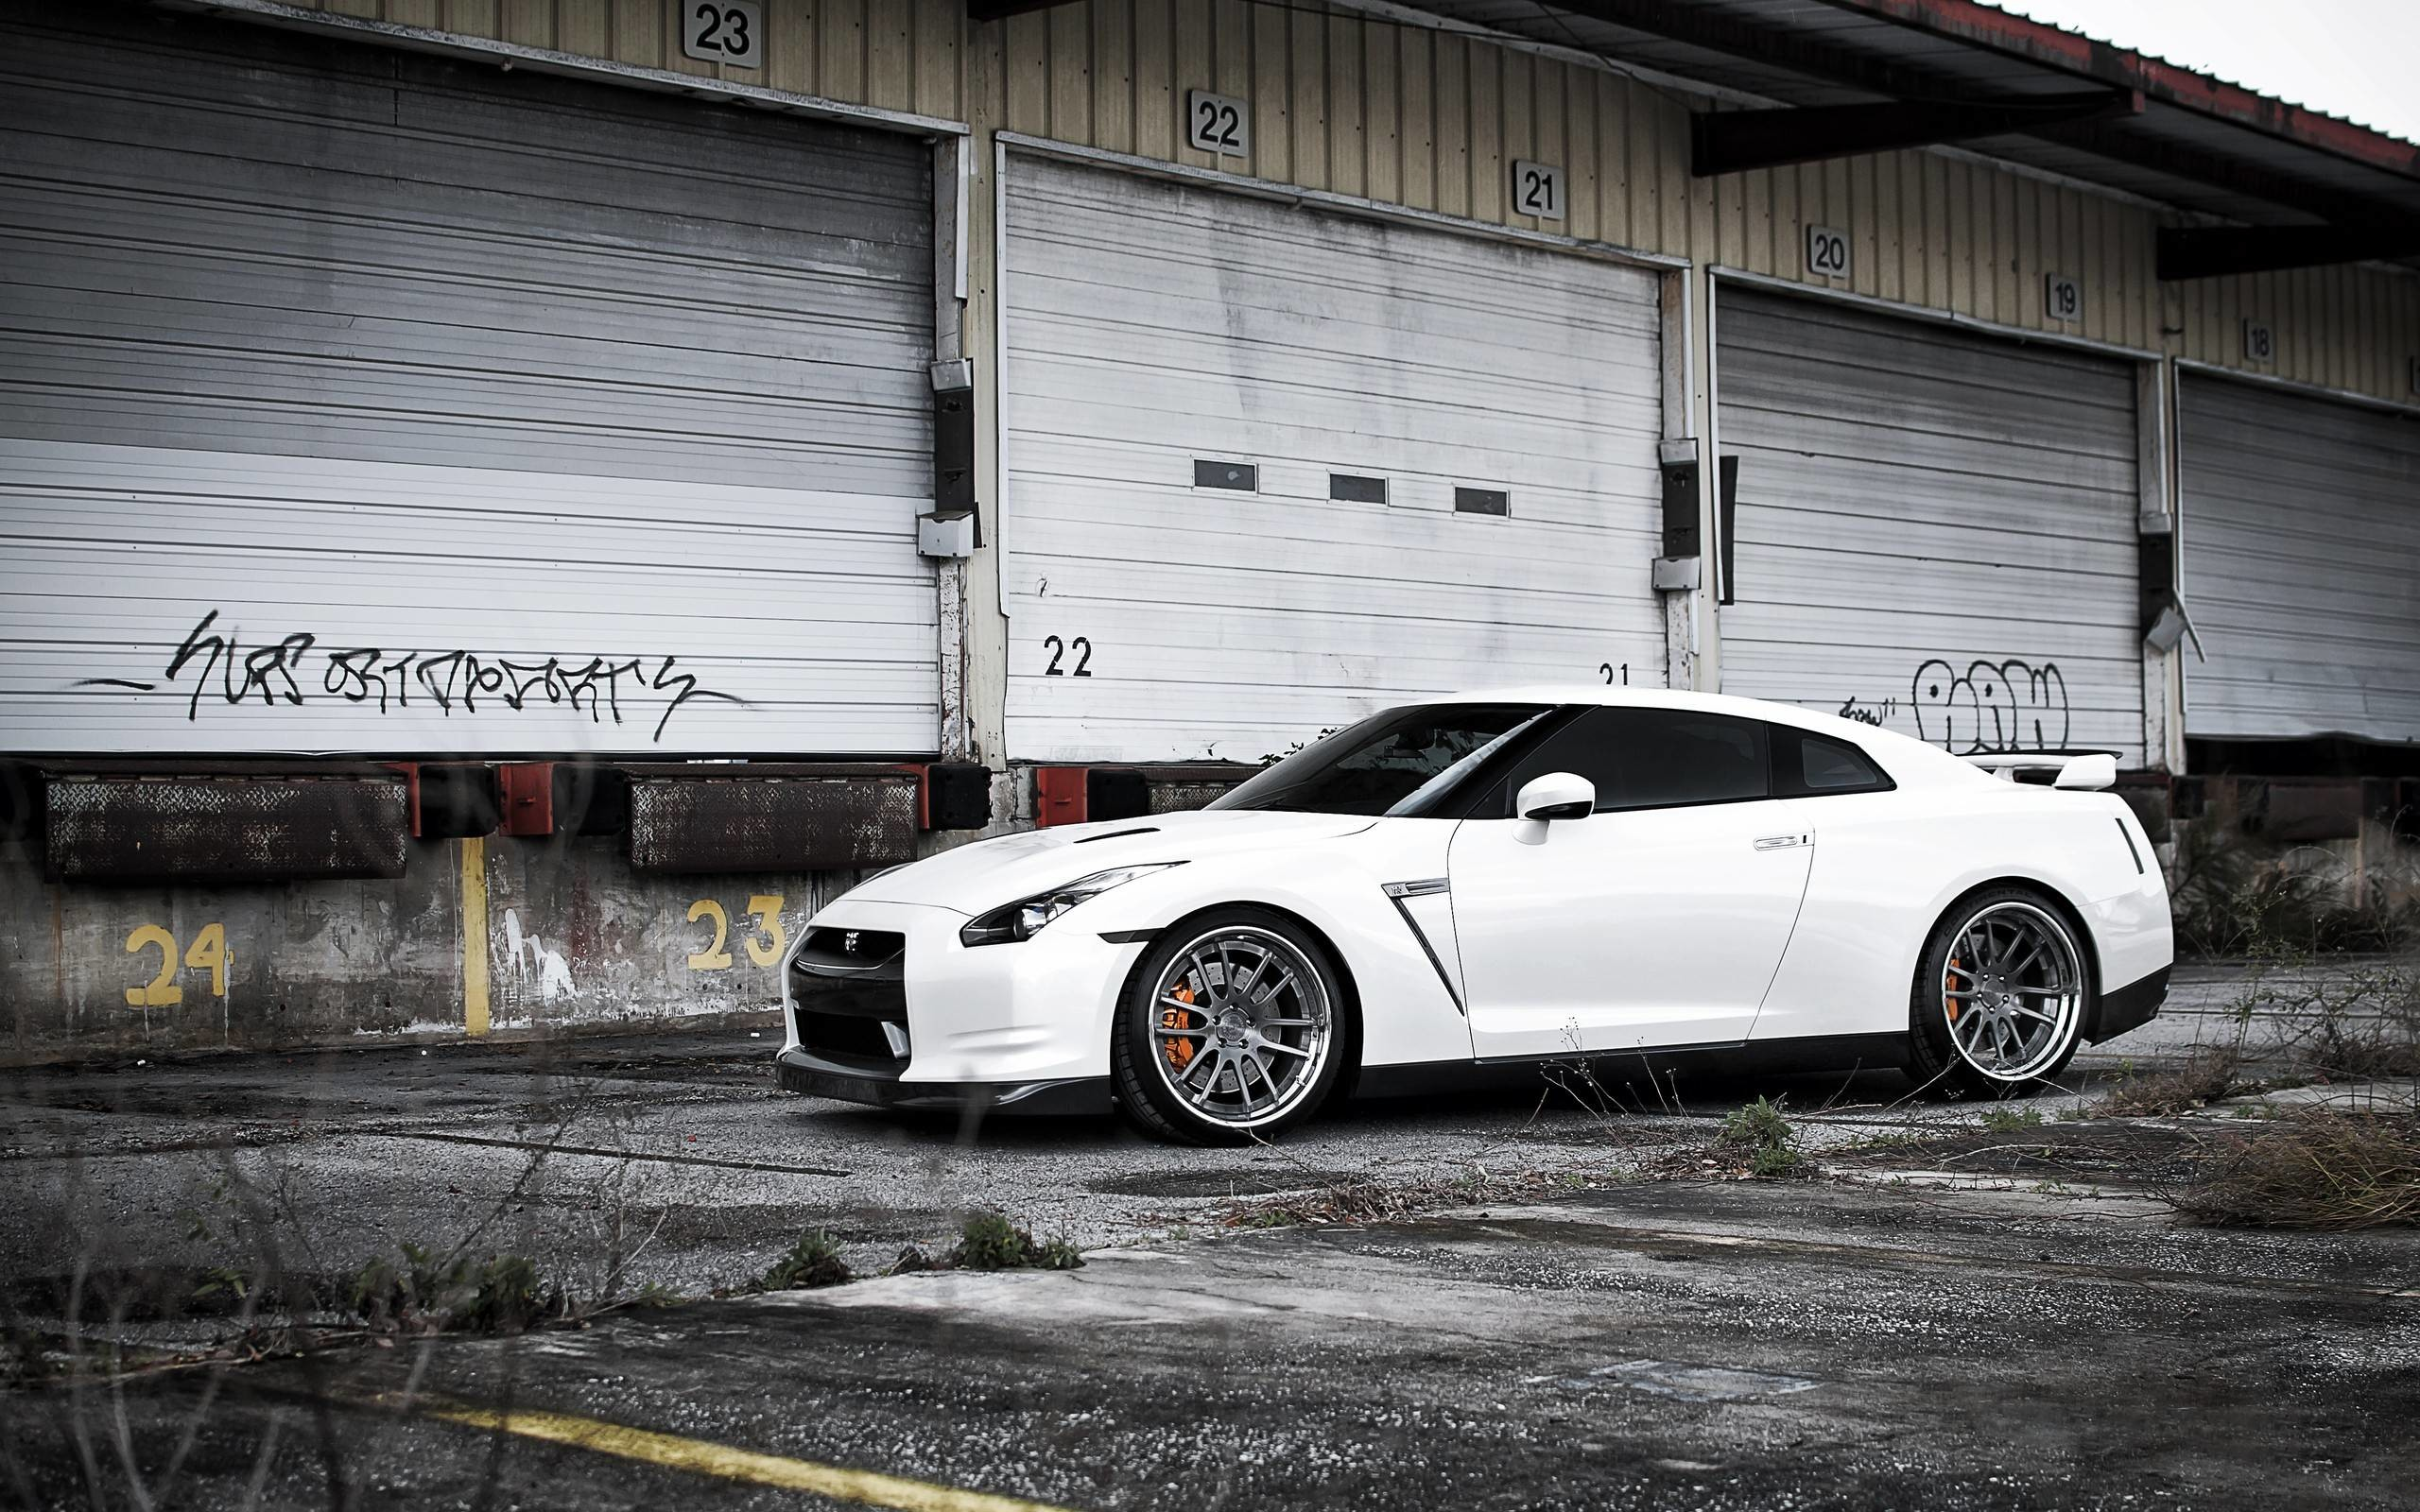 Nissan GT-R wallpaper | Nissan GT-R wallpaper – Part 2